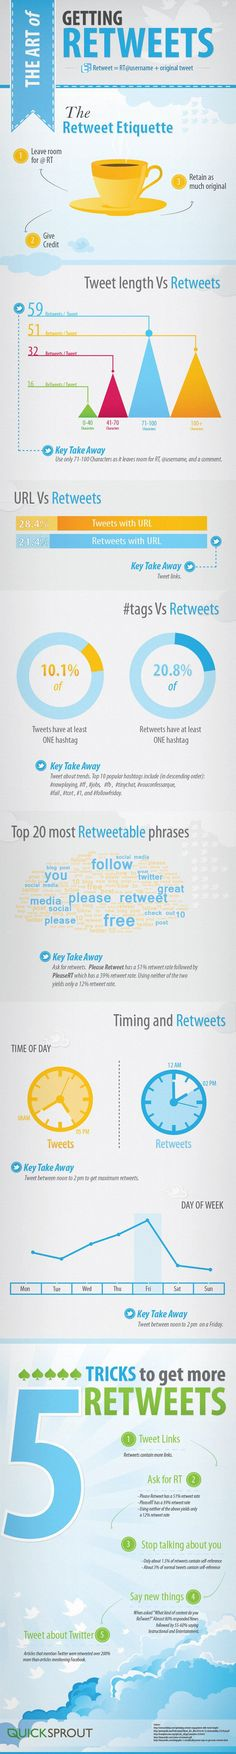 More retweets leads to more followers, more visitors to your links, and more exposure for your brand. Here are top 20 ways to get more retweets.